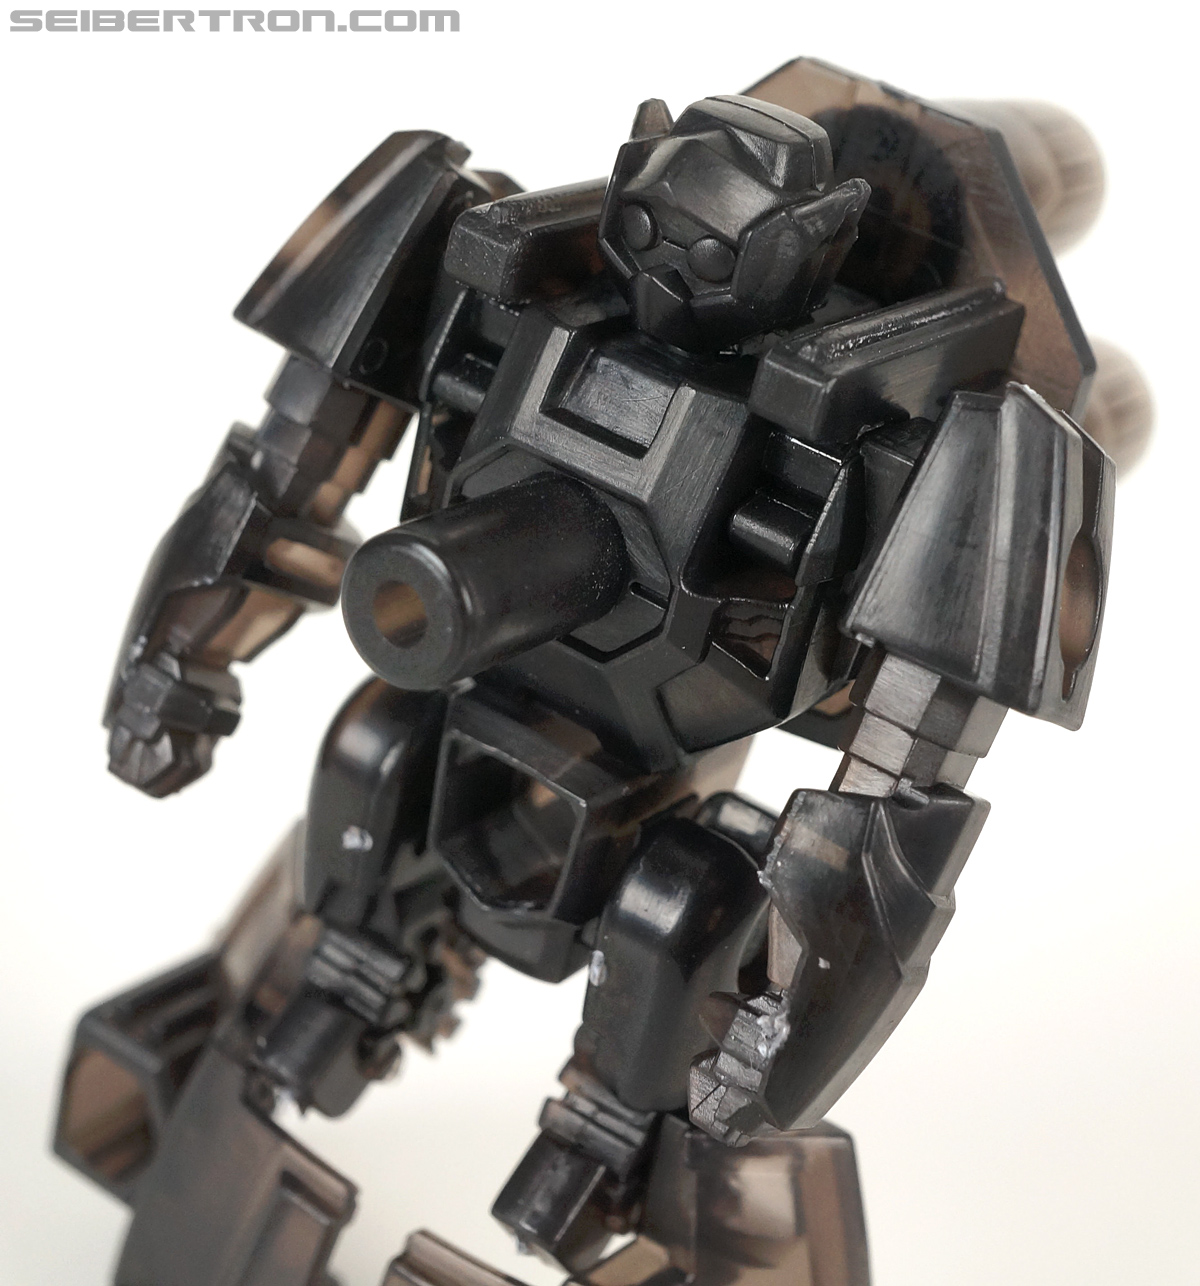 Transformers Arms Micron Shadow C.L. (Image #56 of 85)